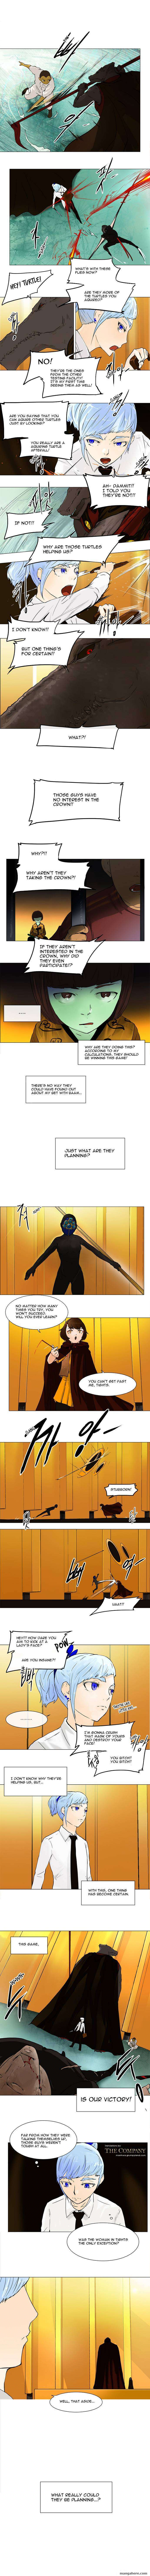 Tower of God 25 Page 2